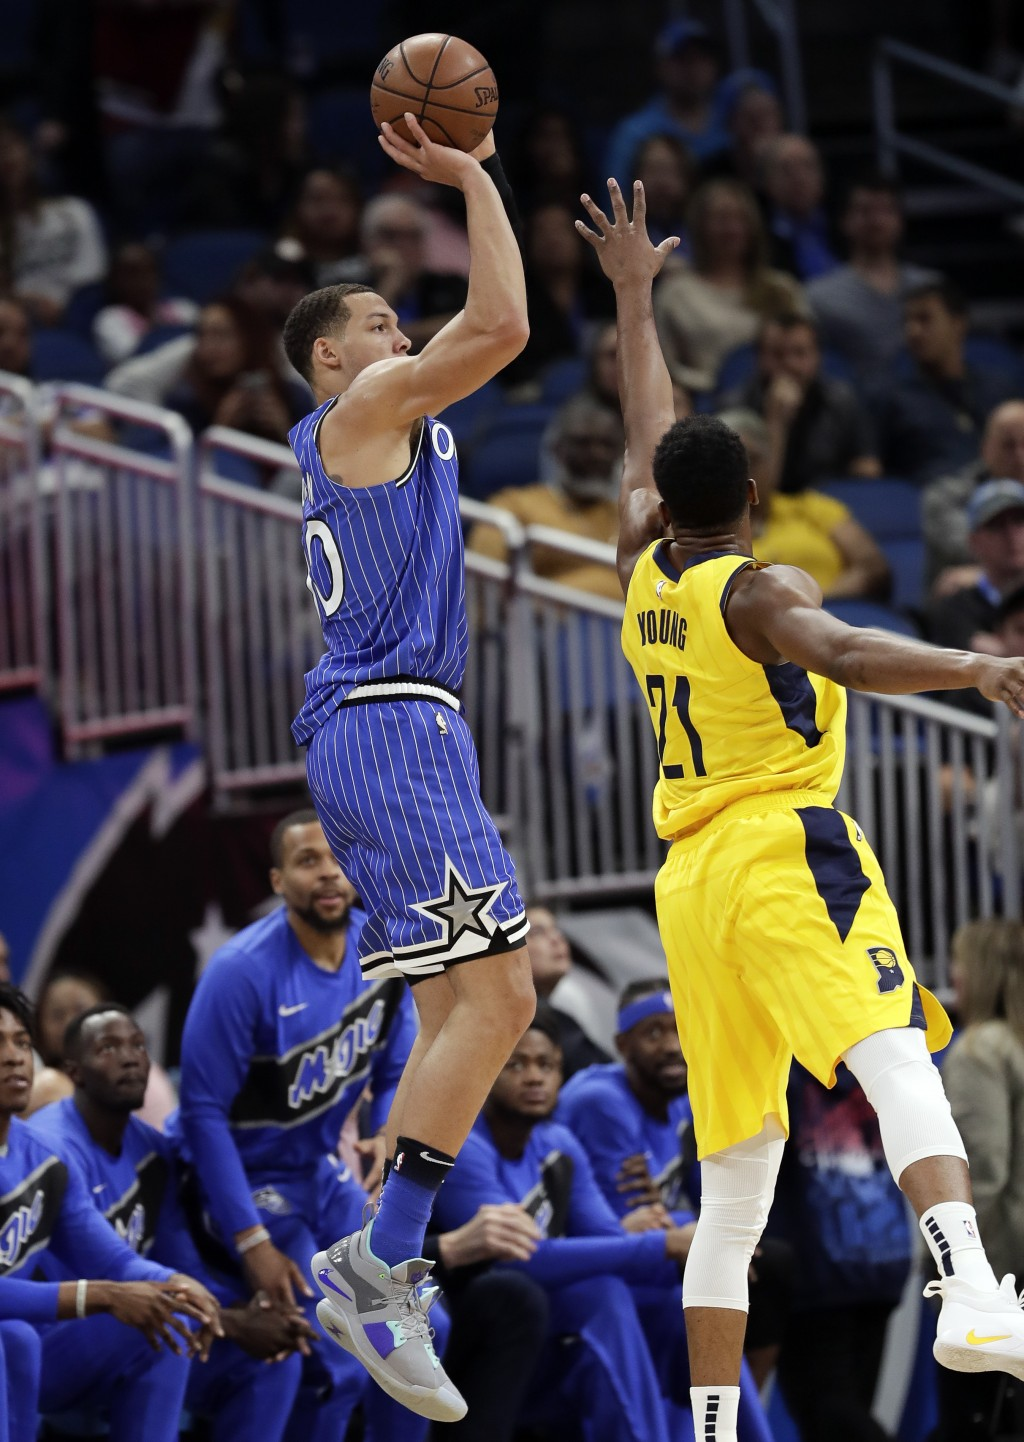 Orlando Magic's Aaron Gordon shoots over Indiana Pacers' Thaddeus Young (21) during the first half of an NBA basketball game Friday, Dec. 7, 2018, in